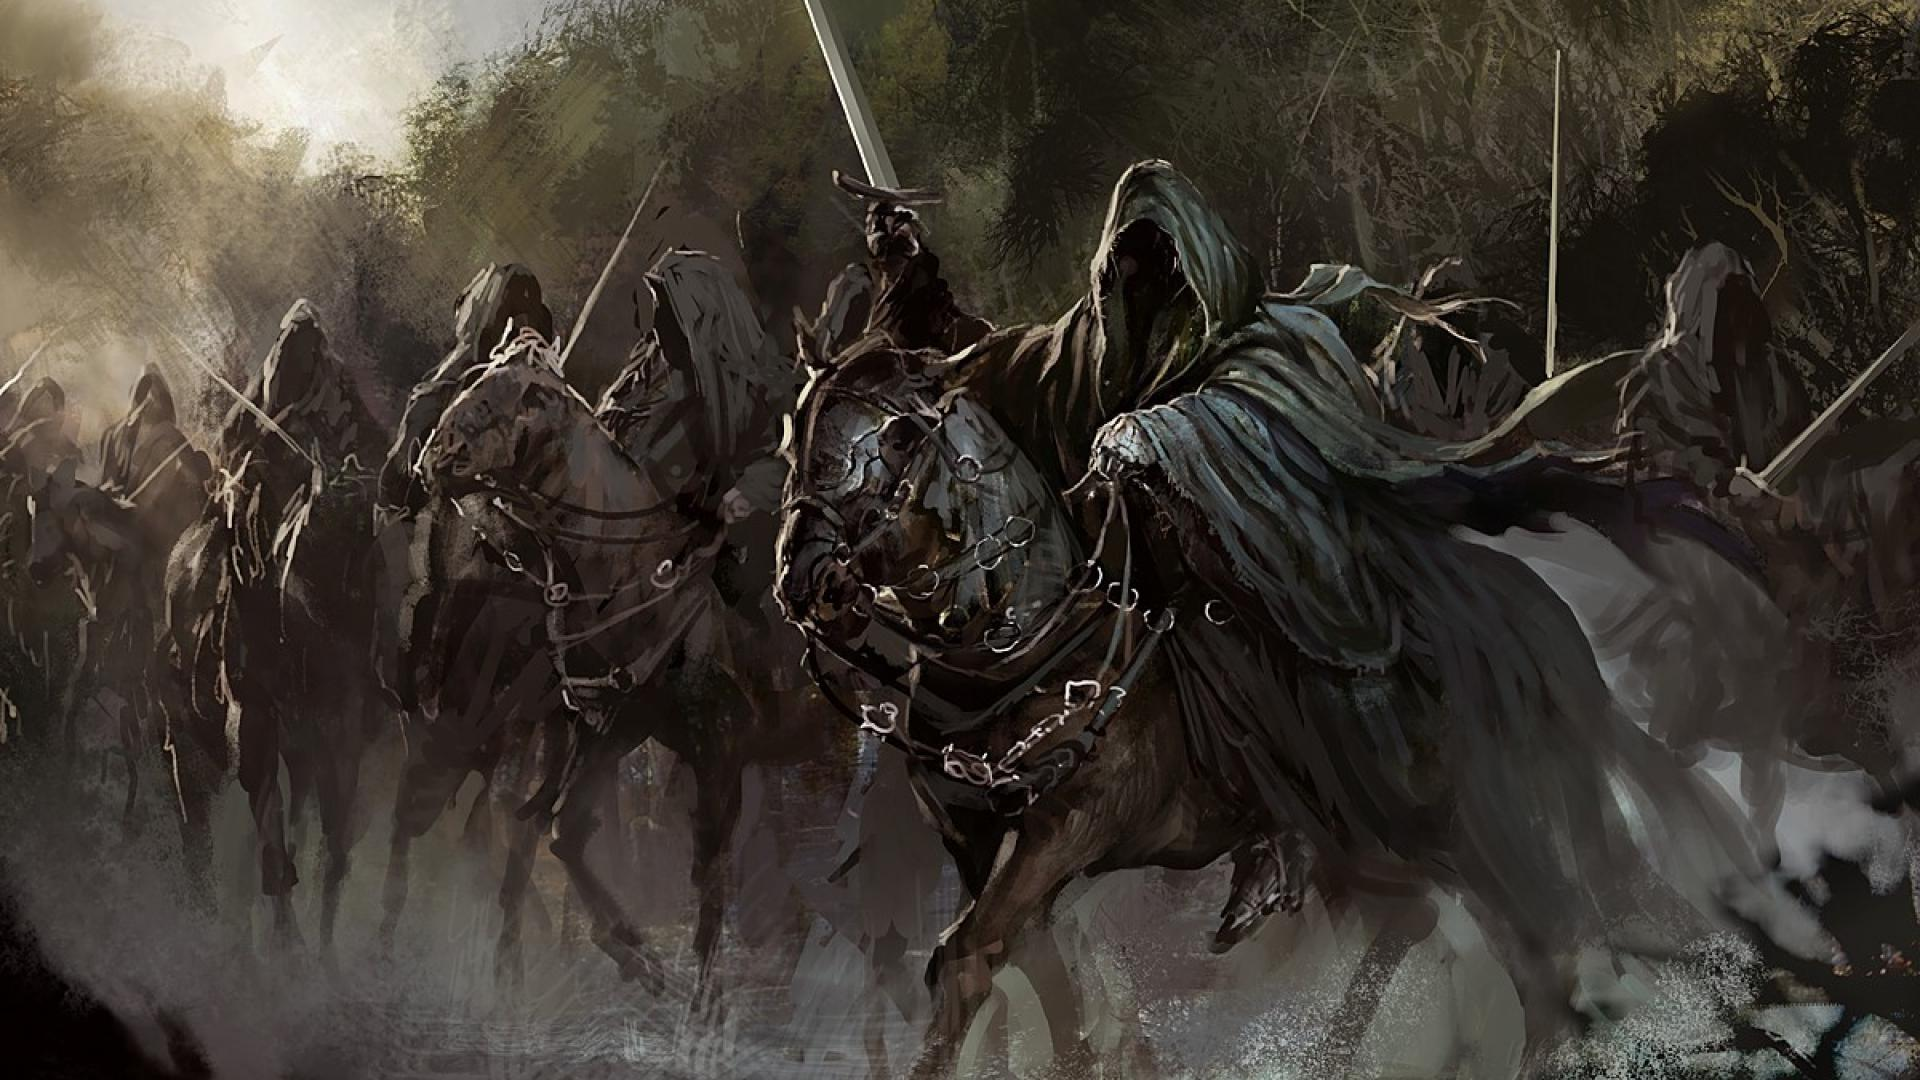 70+] Nazgul Wallpaper on WallpaperSafari